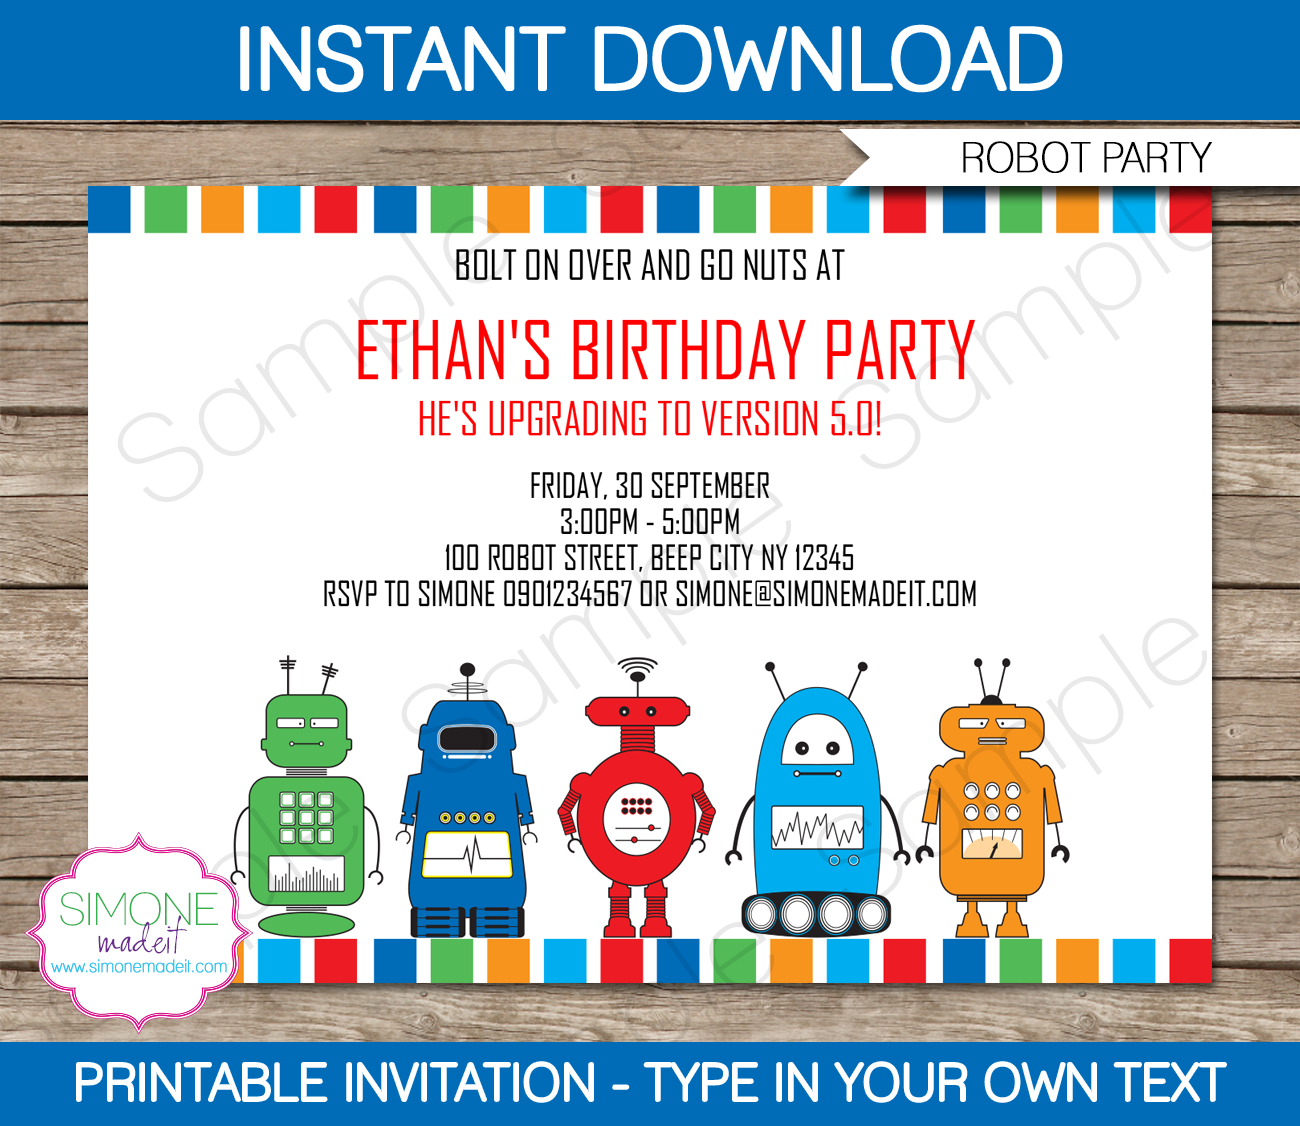 Robot Party Invitations Template  Robot birthday party, Party